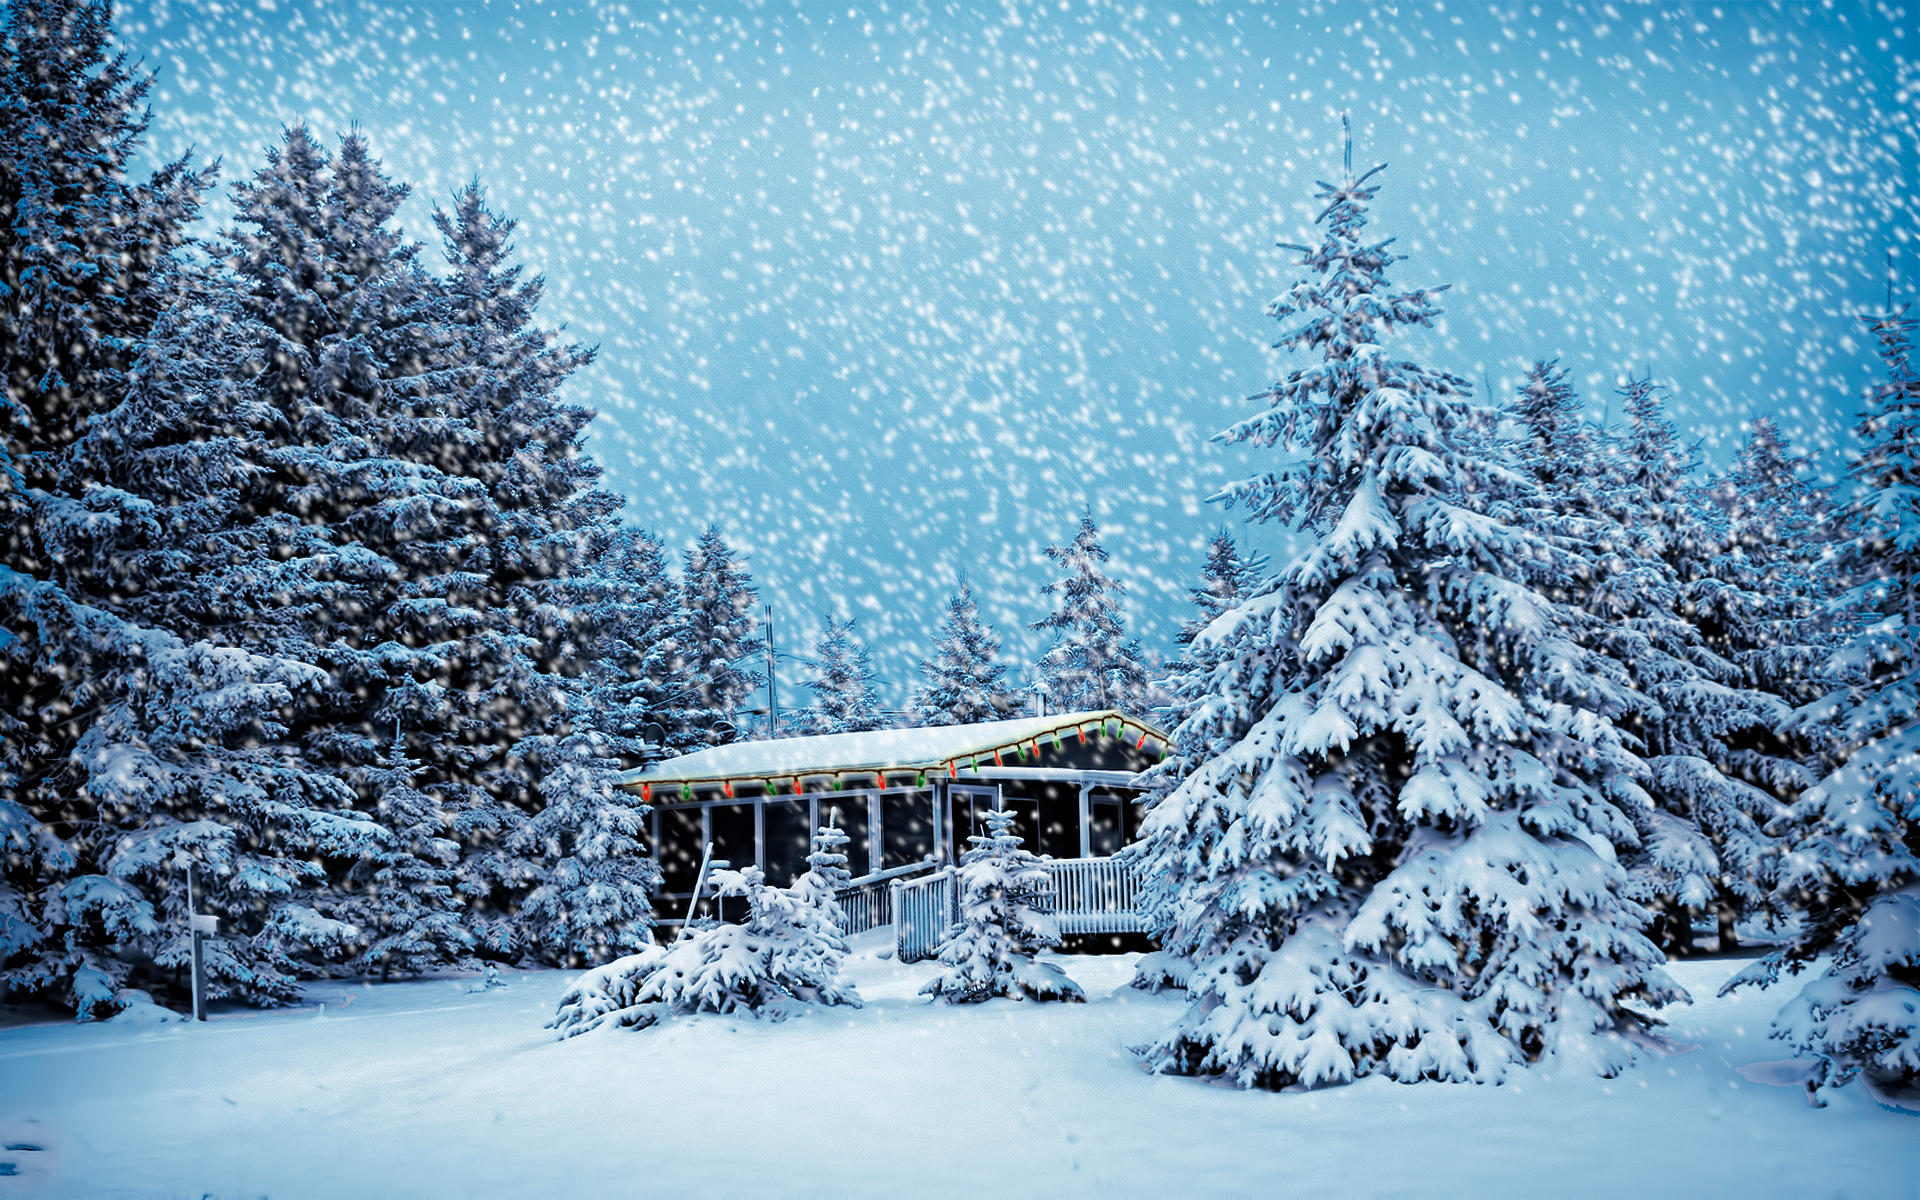 christmas_snowstorm_by_frankief d4ju852